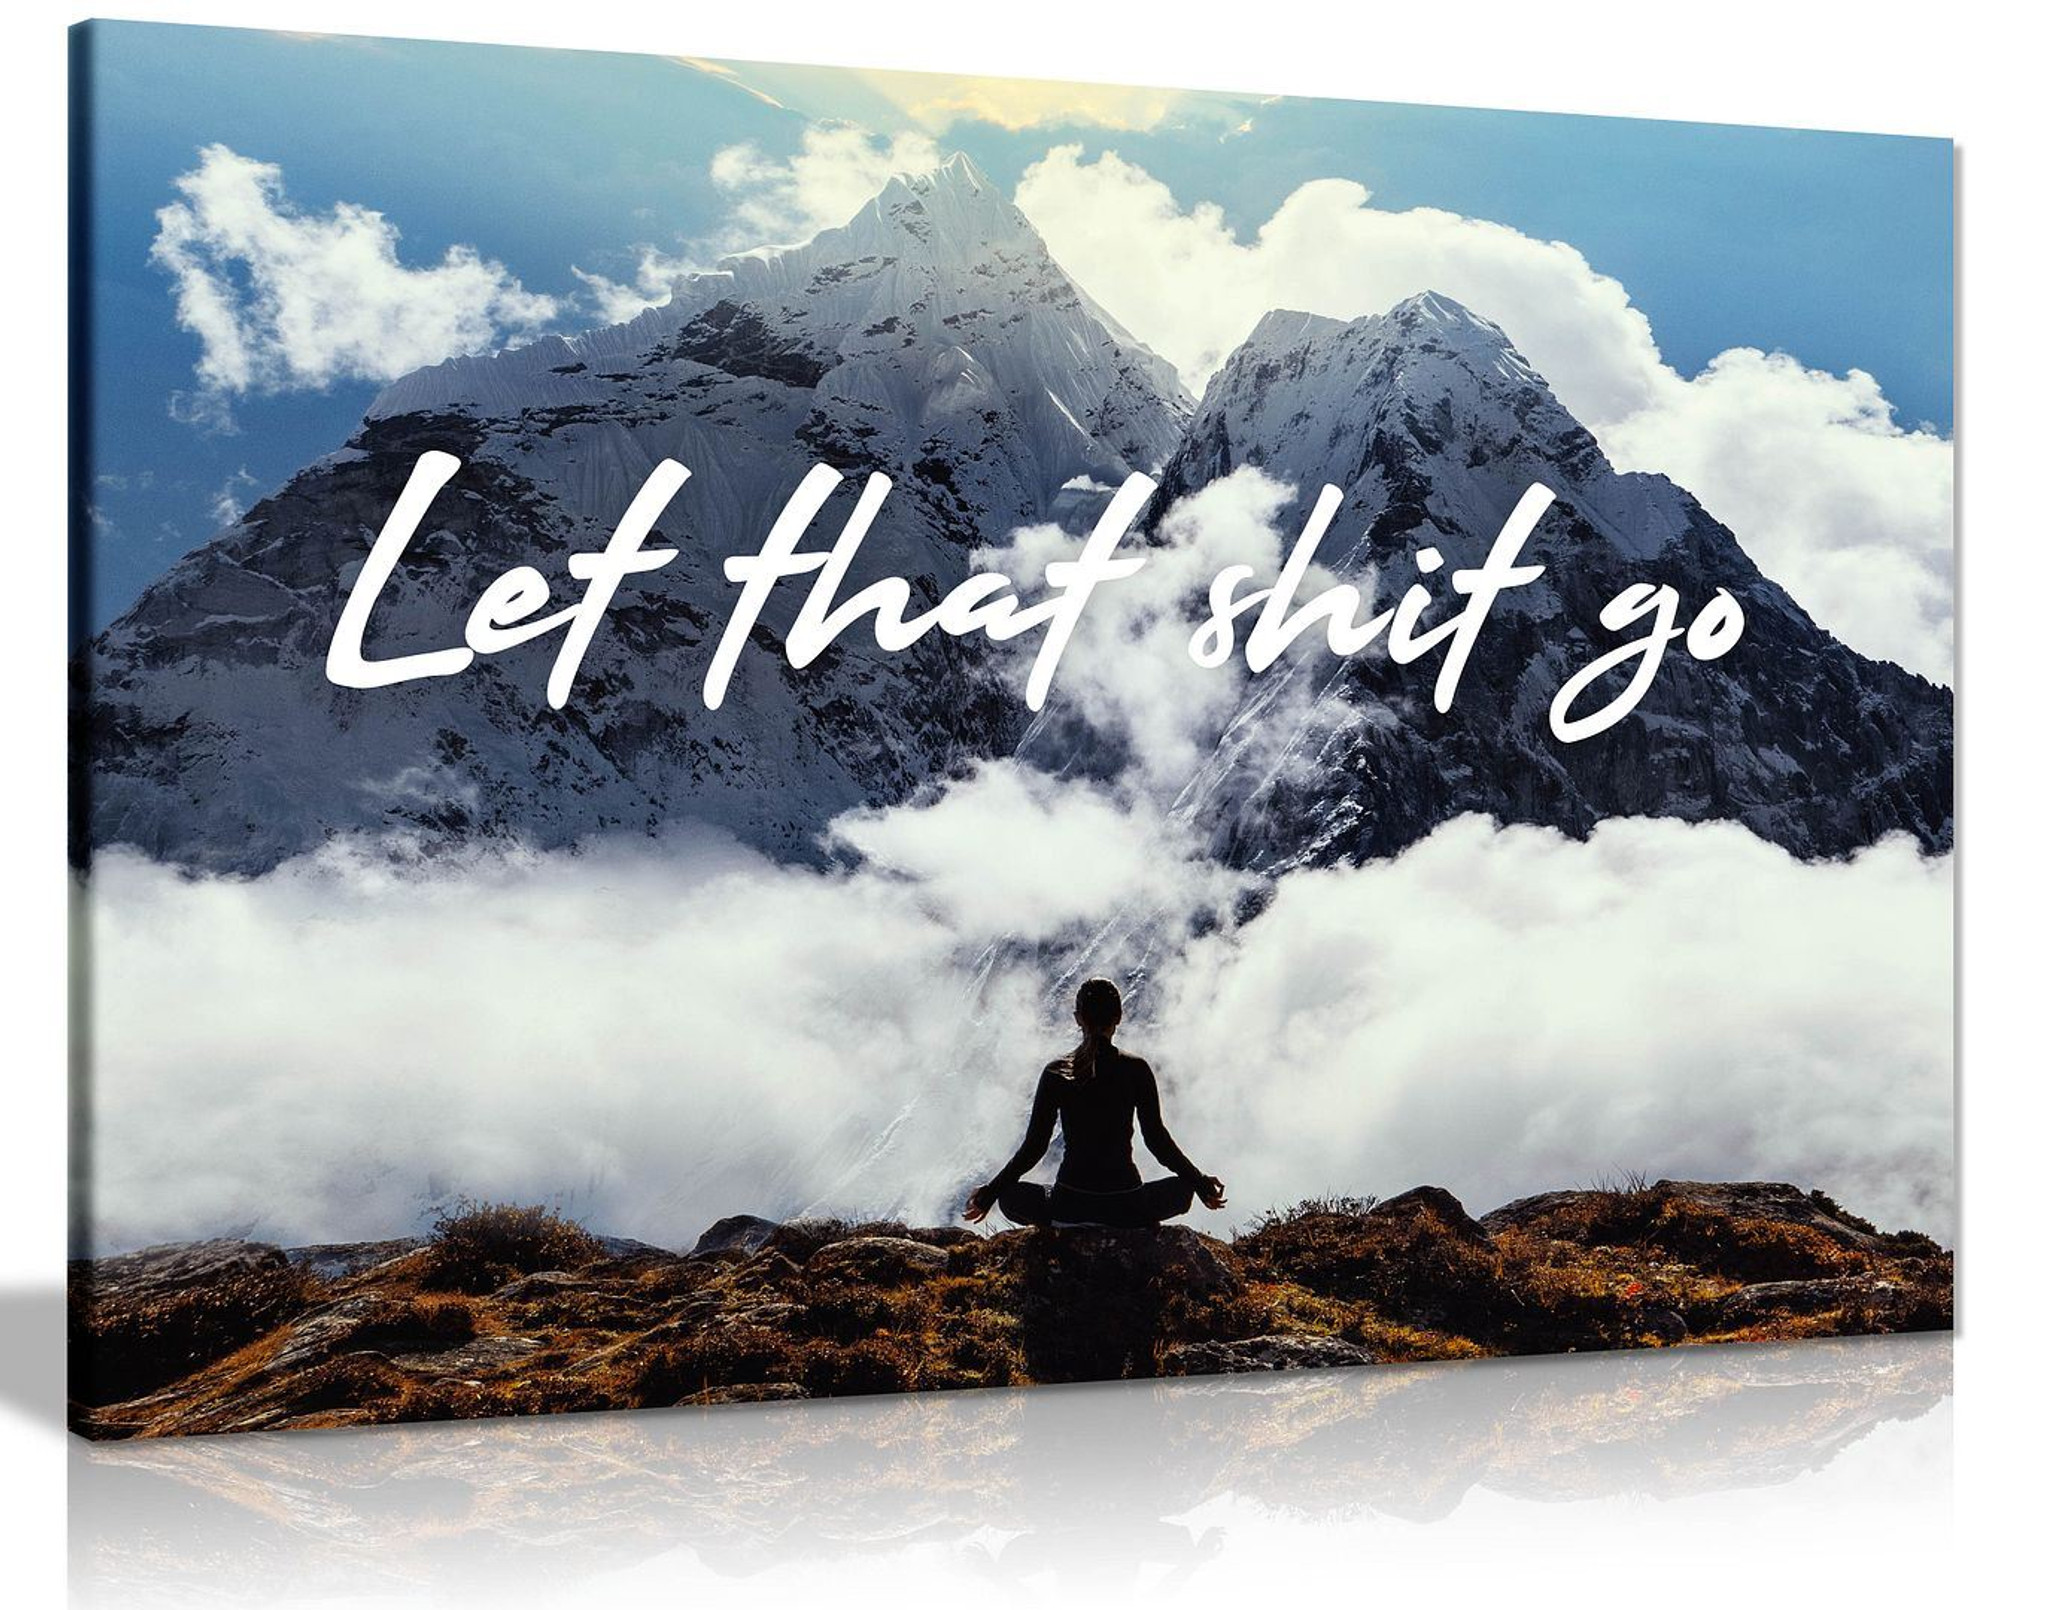 Let That Shit Go Healing Meditation Canvas Wall Art Picture Print Home Decor